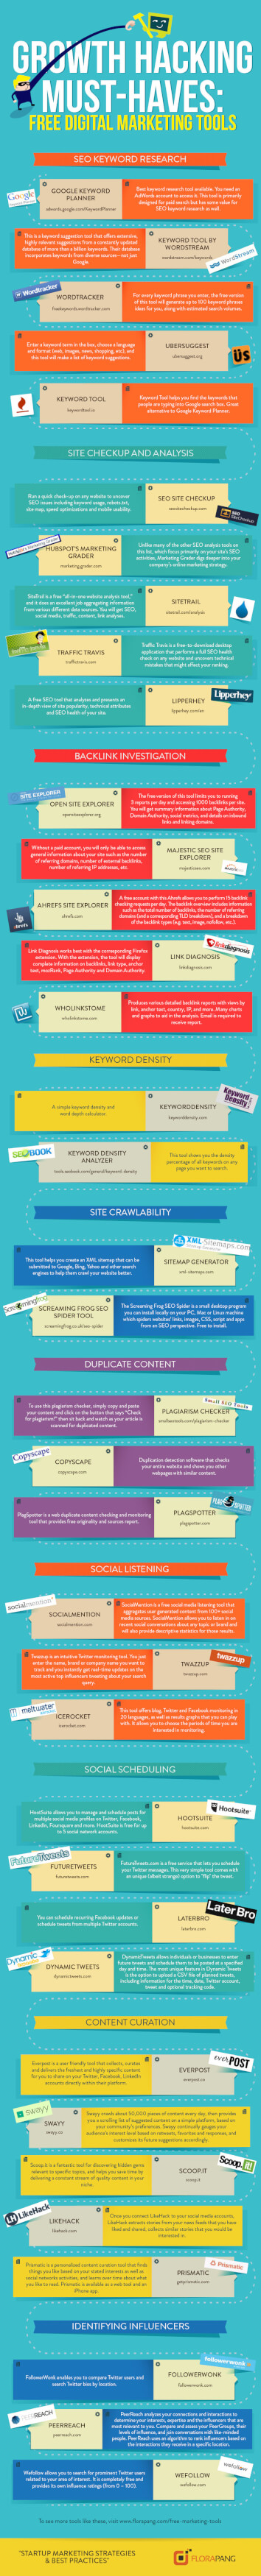 Growth-Hacking-Must-Haves-Free-Digital-Marketing-Tools 1